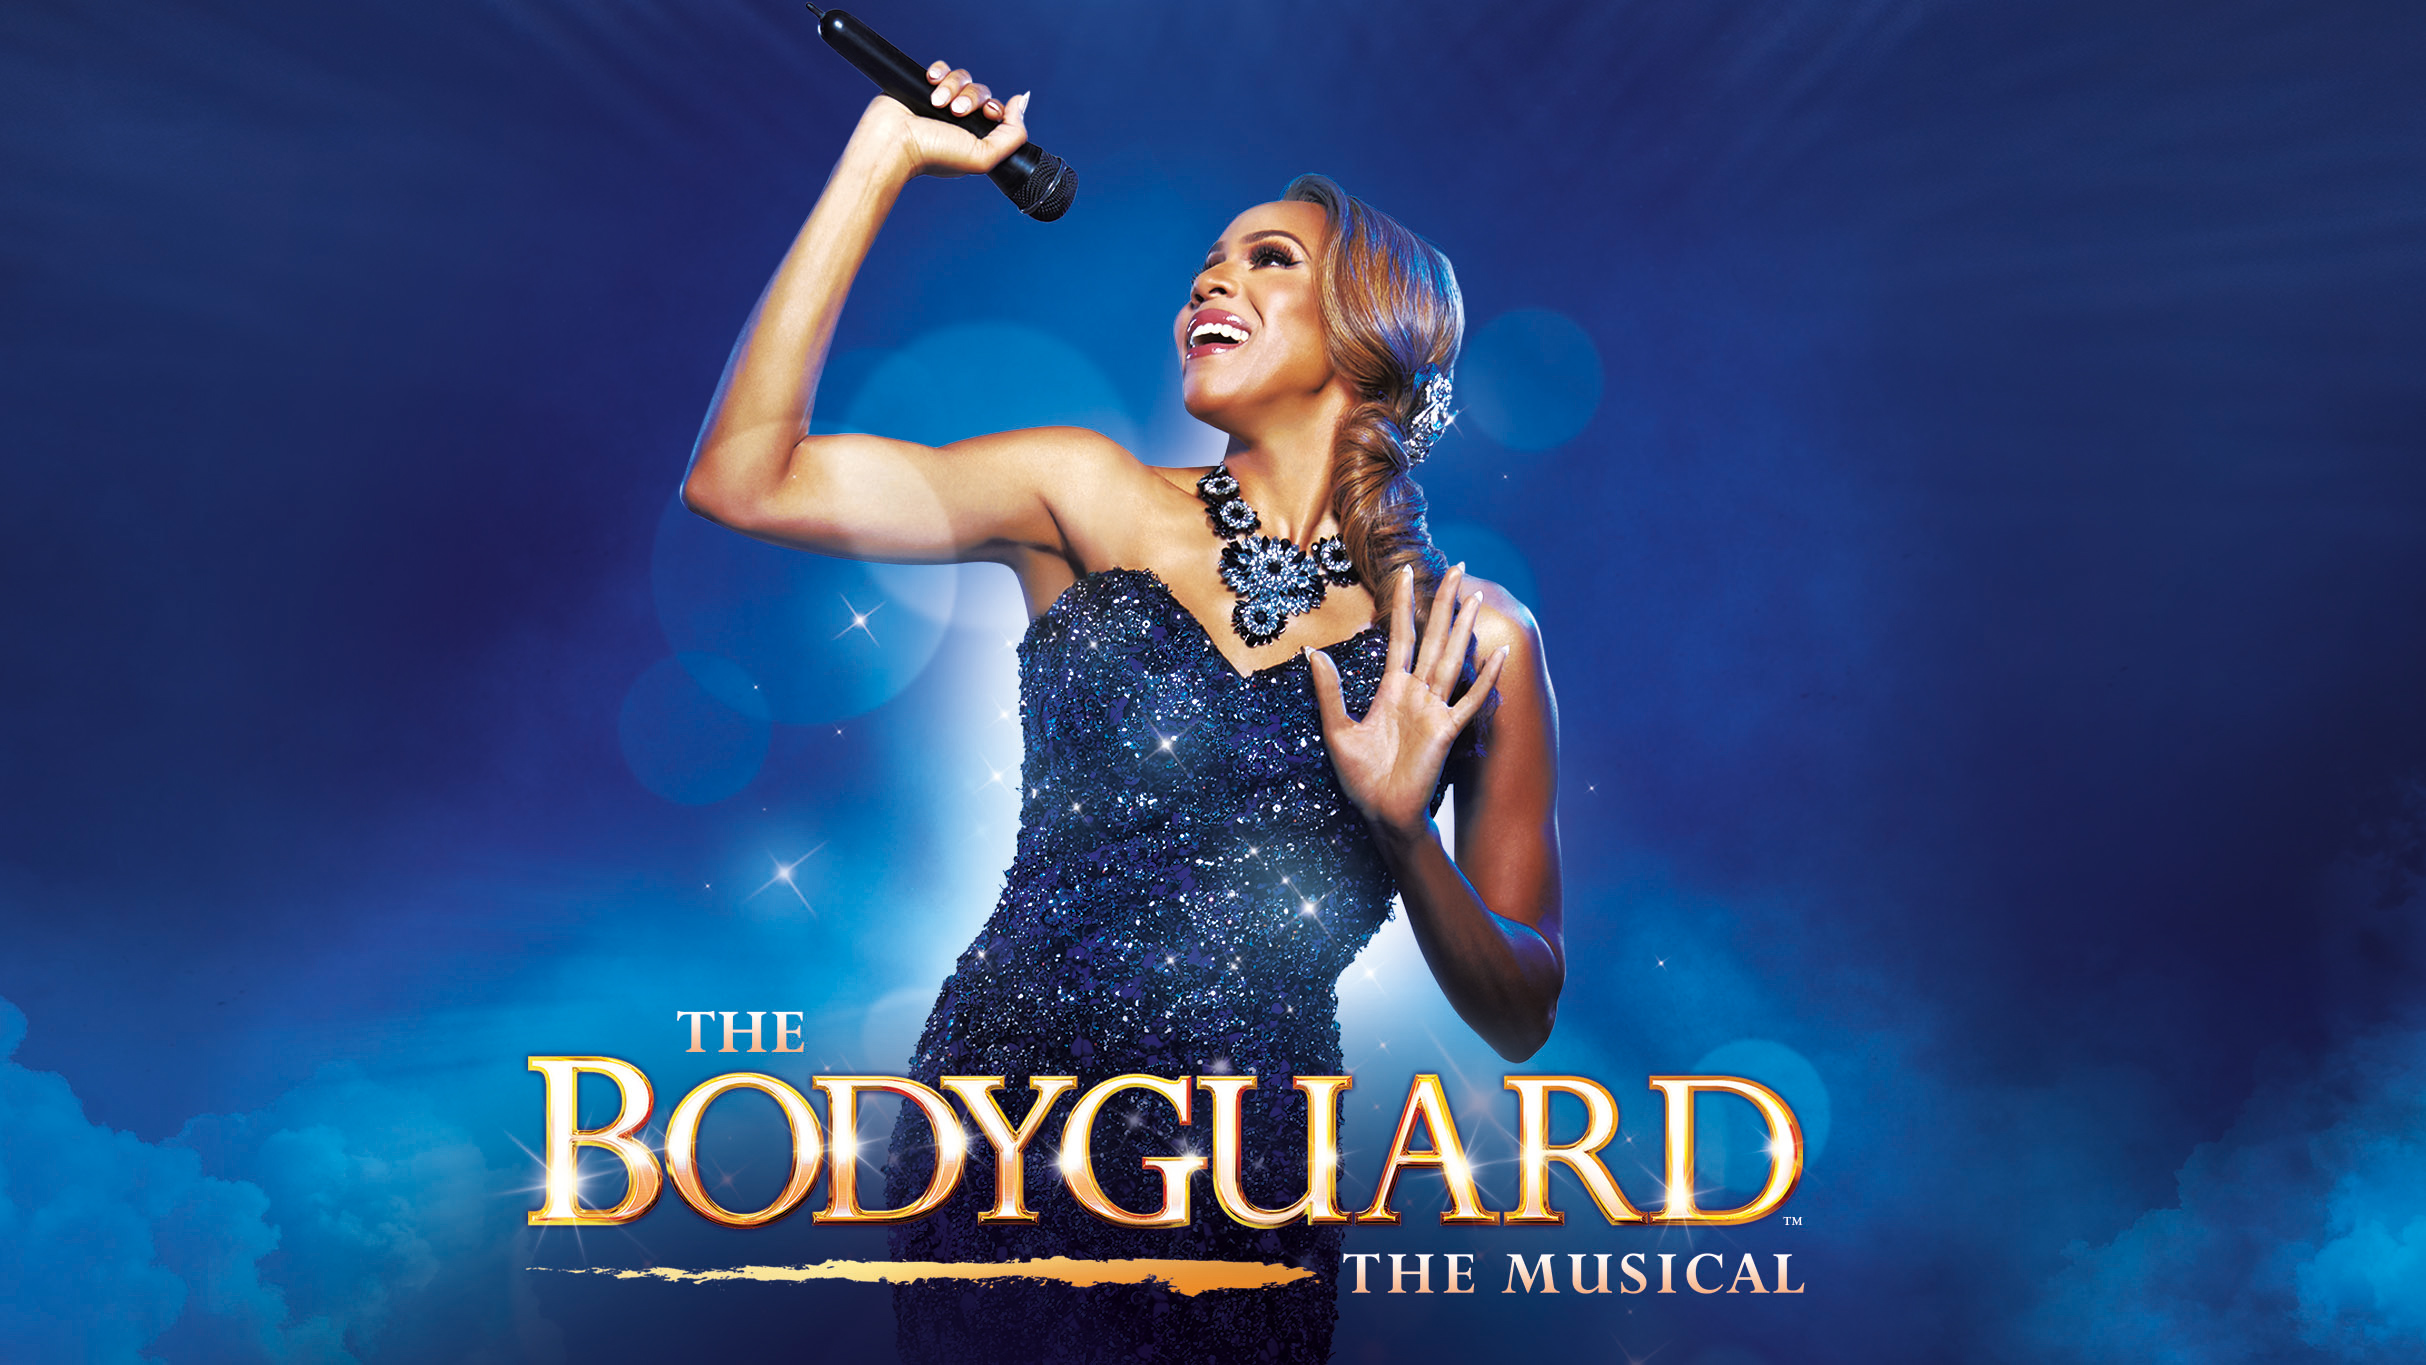 "Image description: Rachel Marron (Deborah Cox) smiles and belts into a microphone in her raised right hand. Seen from the waist up, she wears a strapless dress of shimmering beaded navy blue against a bright blue background. At the bottom, gold text reads: ""The Bodyguard"" The Musical."